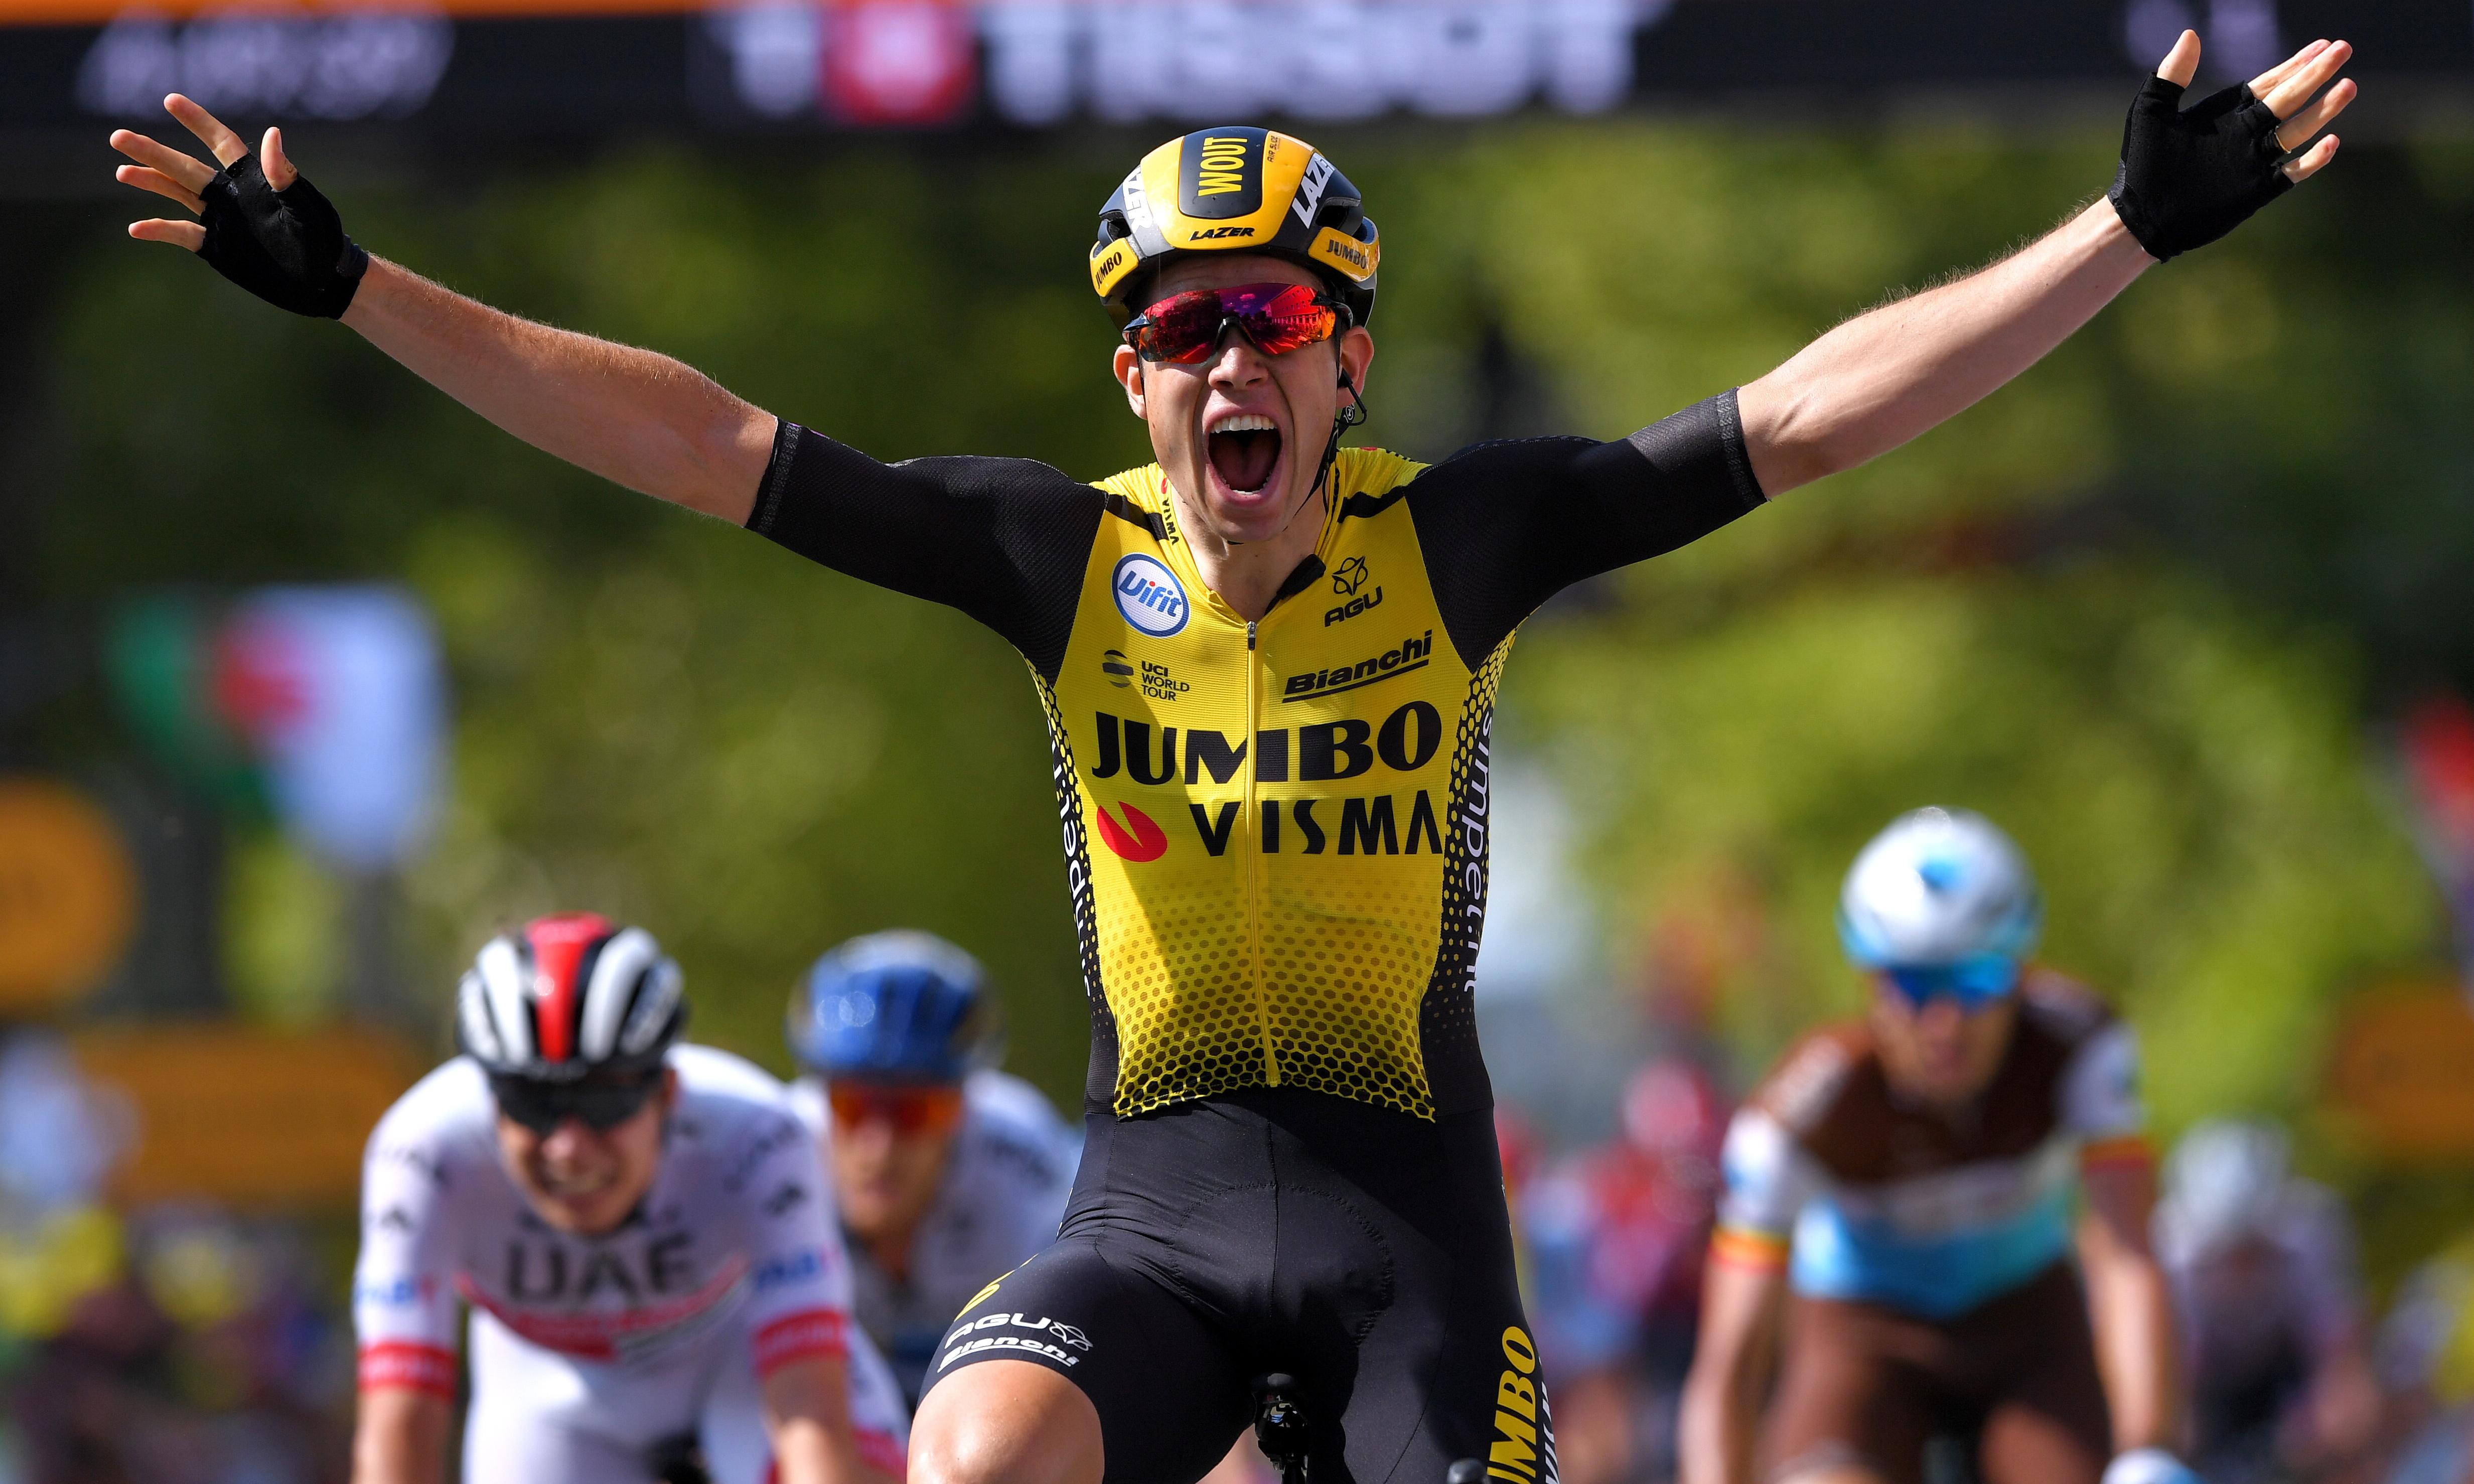 Van Aert sprints to stage but Thomas the big winner on Tour day of chaos